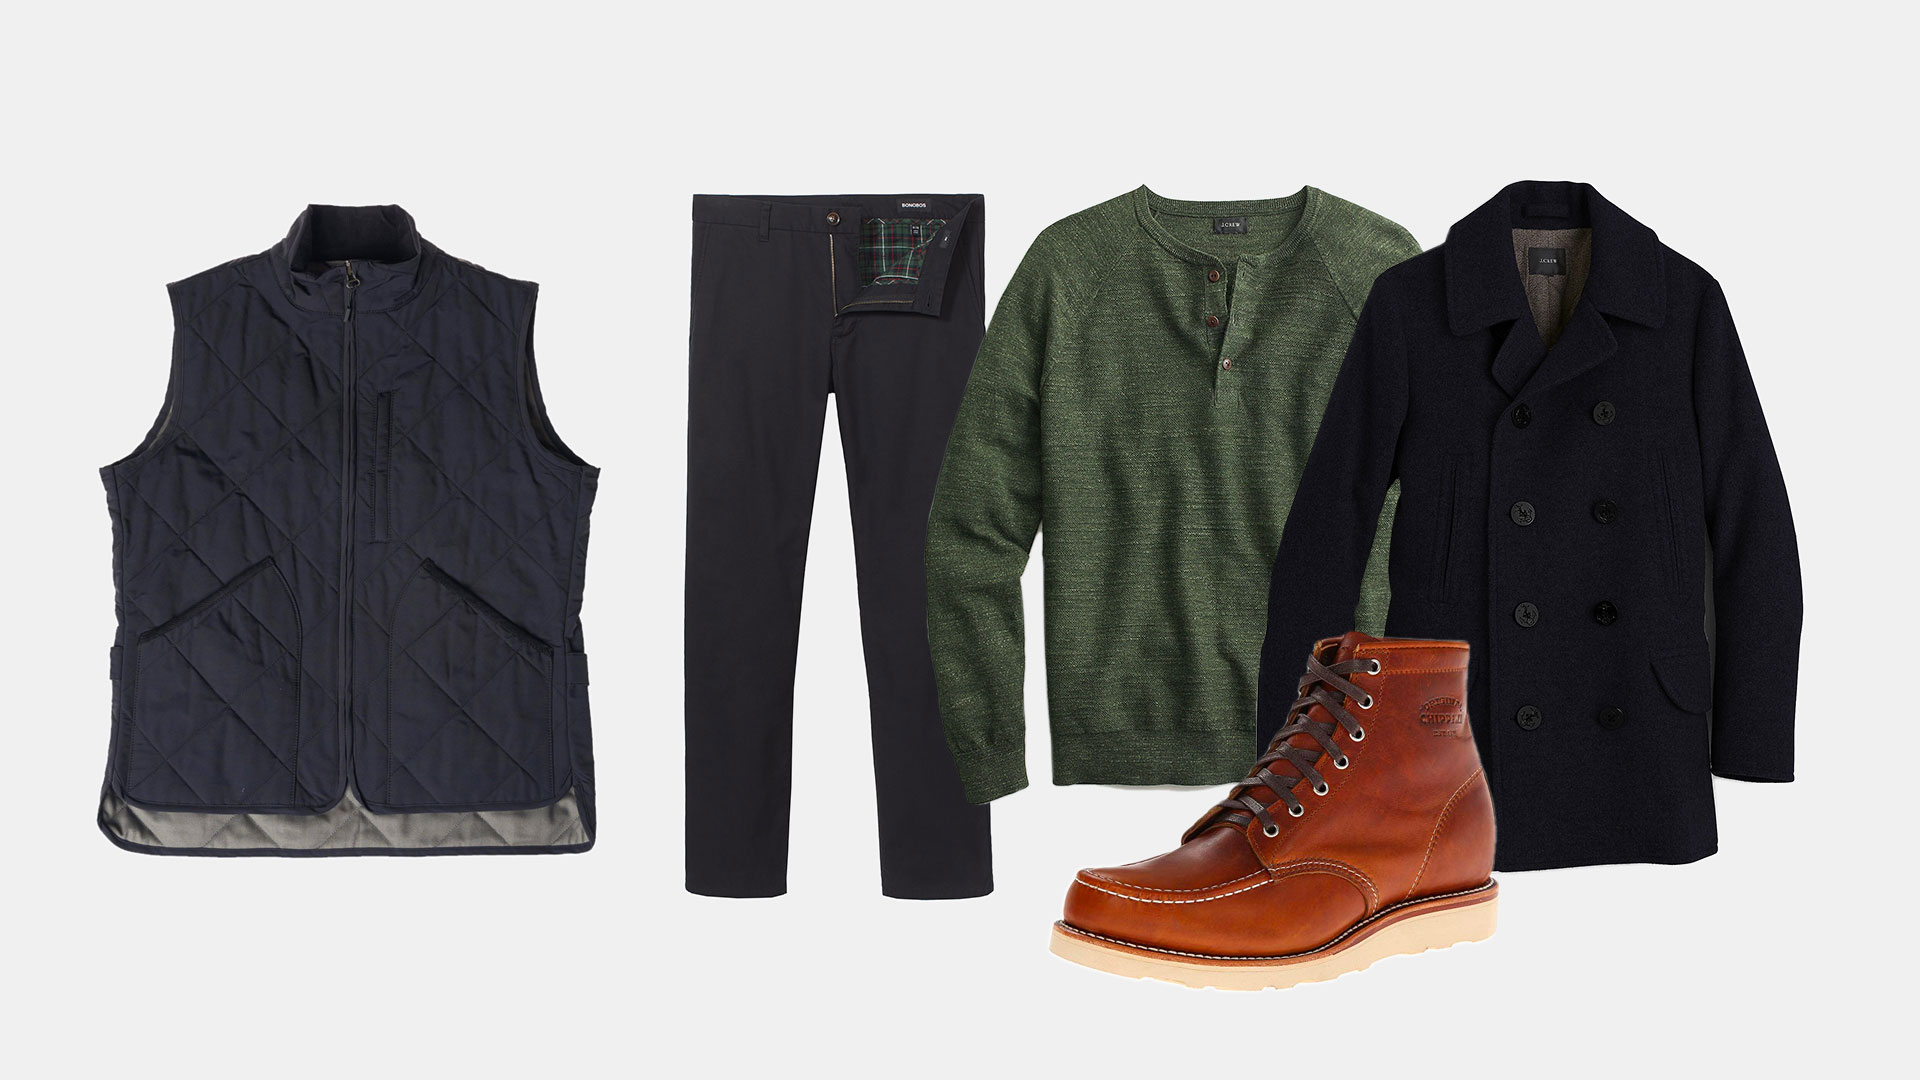 navy quilted vest flannel lined gray chinos green henley sweater navy pea coat and tan moc toe boots